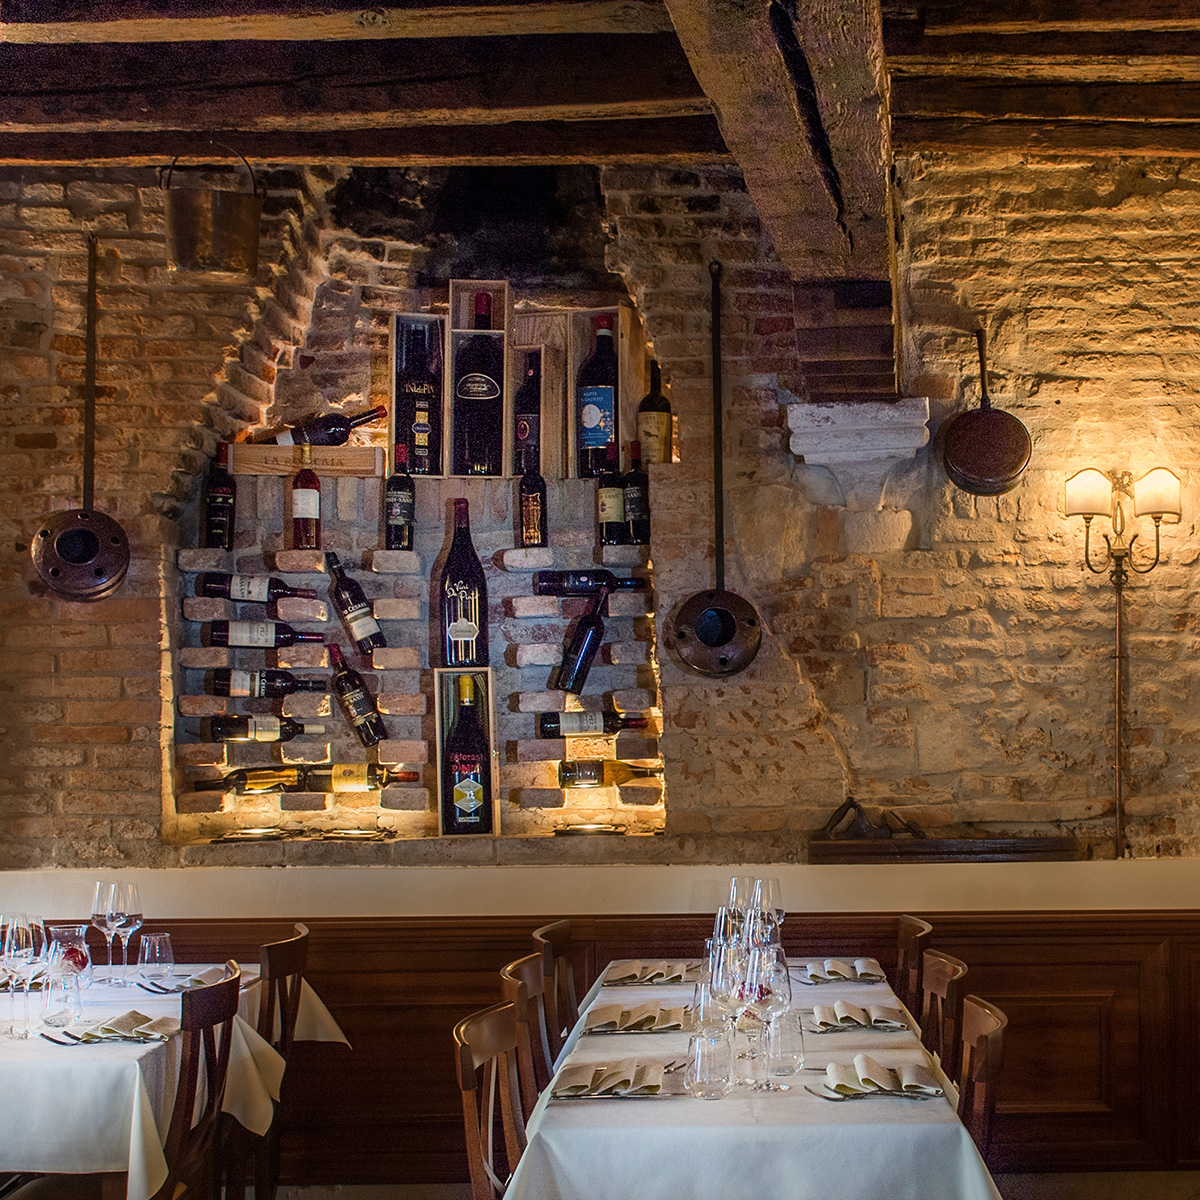 Vini da Pinto, Rialto - The restaurant interior